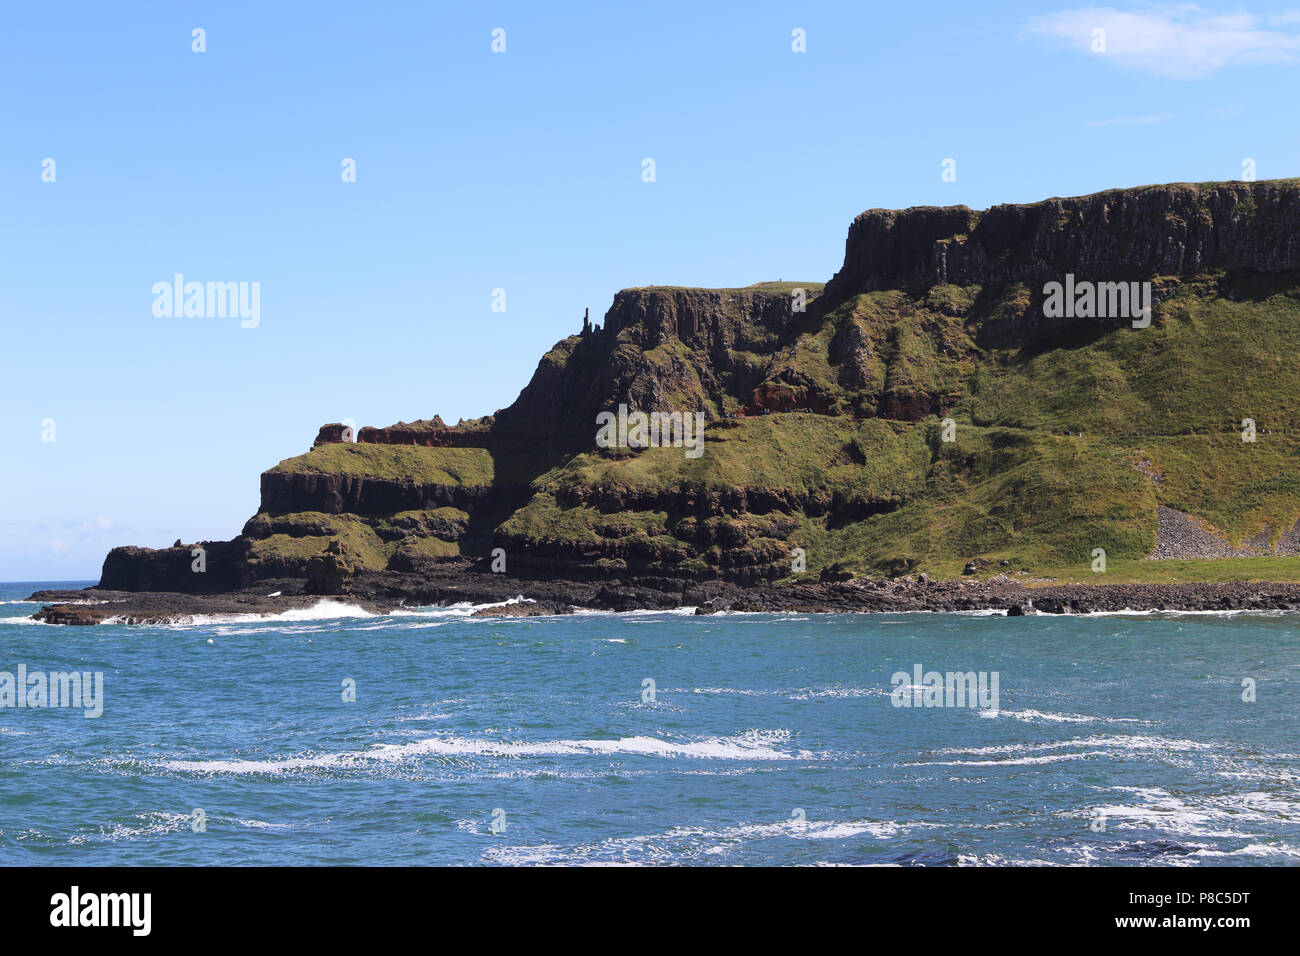 The Giant's Causeway is an area of about 40,000 interlocking basalt columns, the result of an ancient volcanic fissure eruption. It is located in Coun - Stock Image